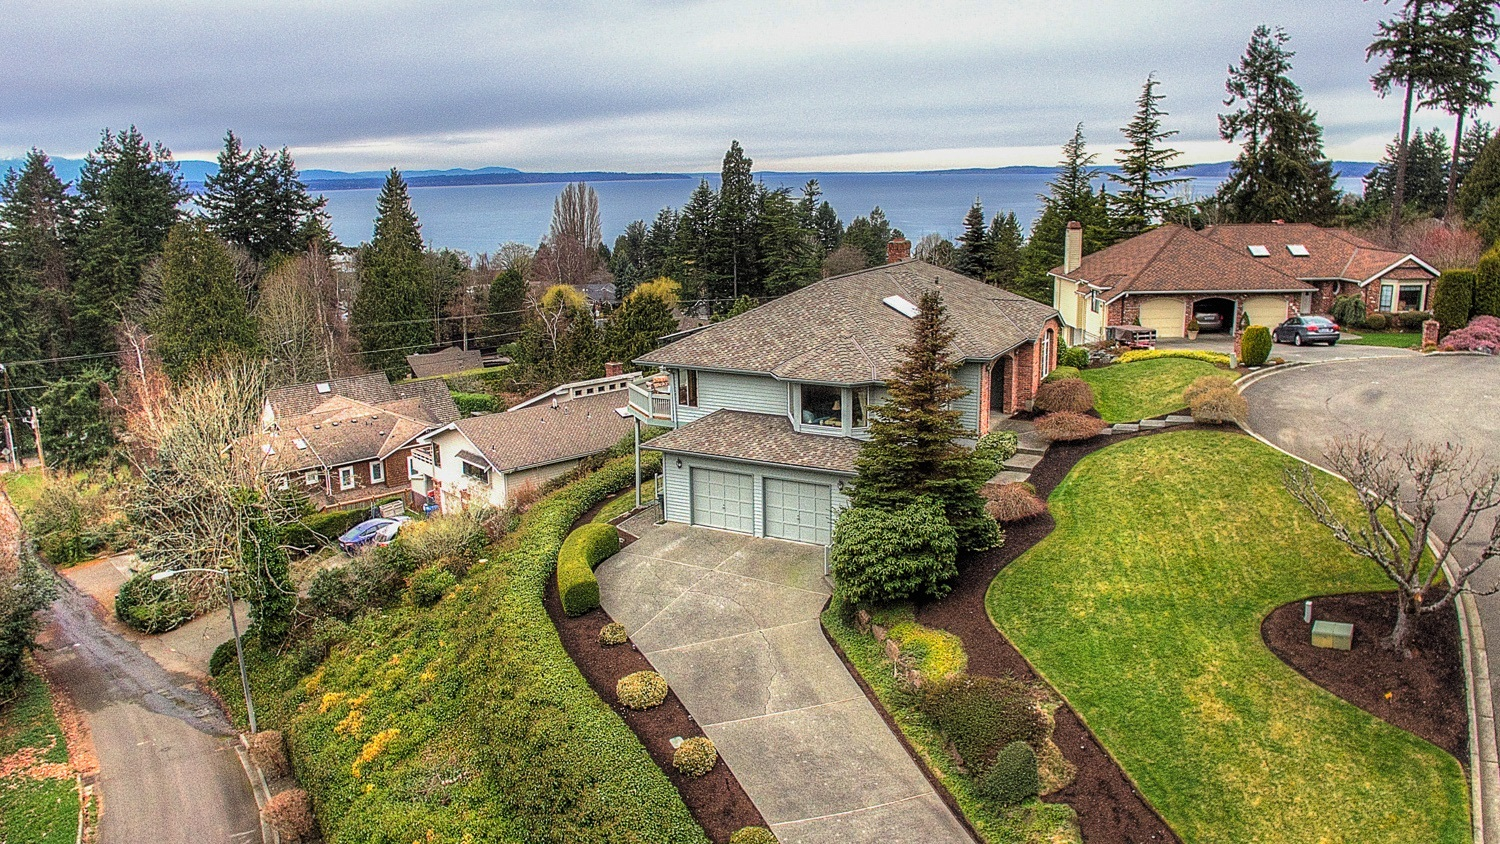 9515 Forest Dell Dr, Edmonds, WA - USA (photo 3)